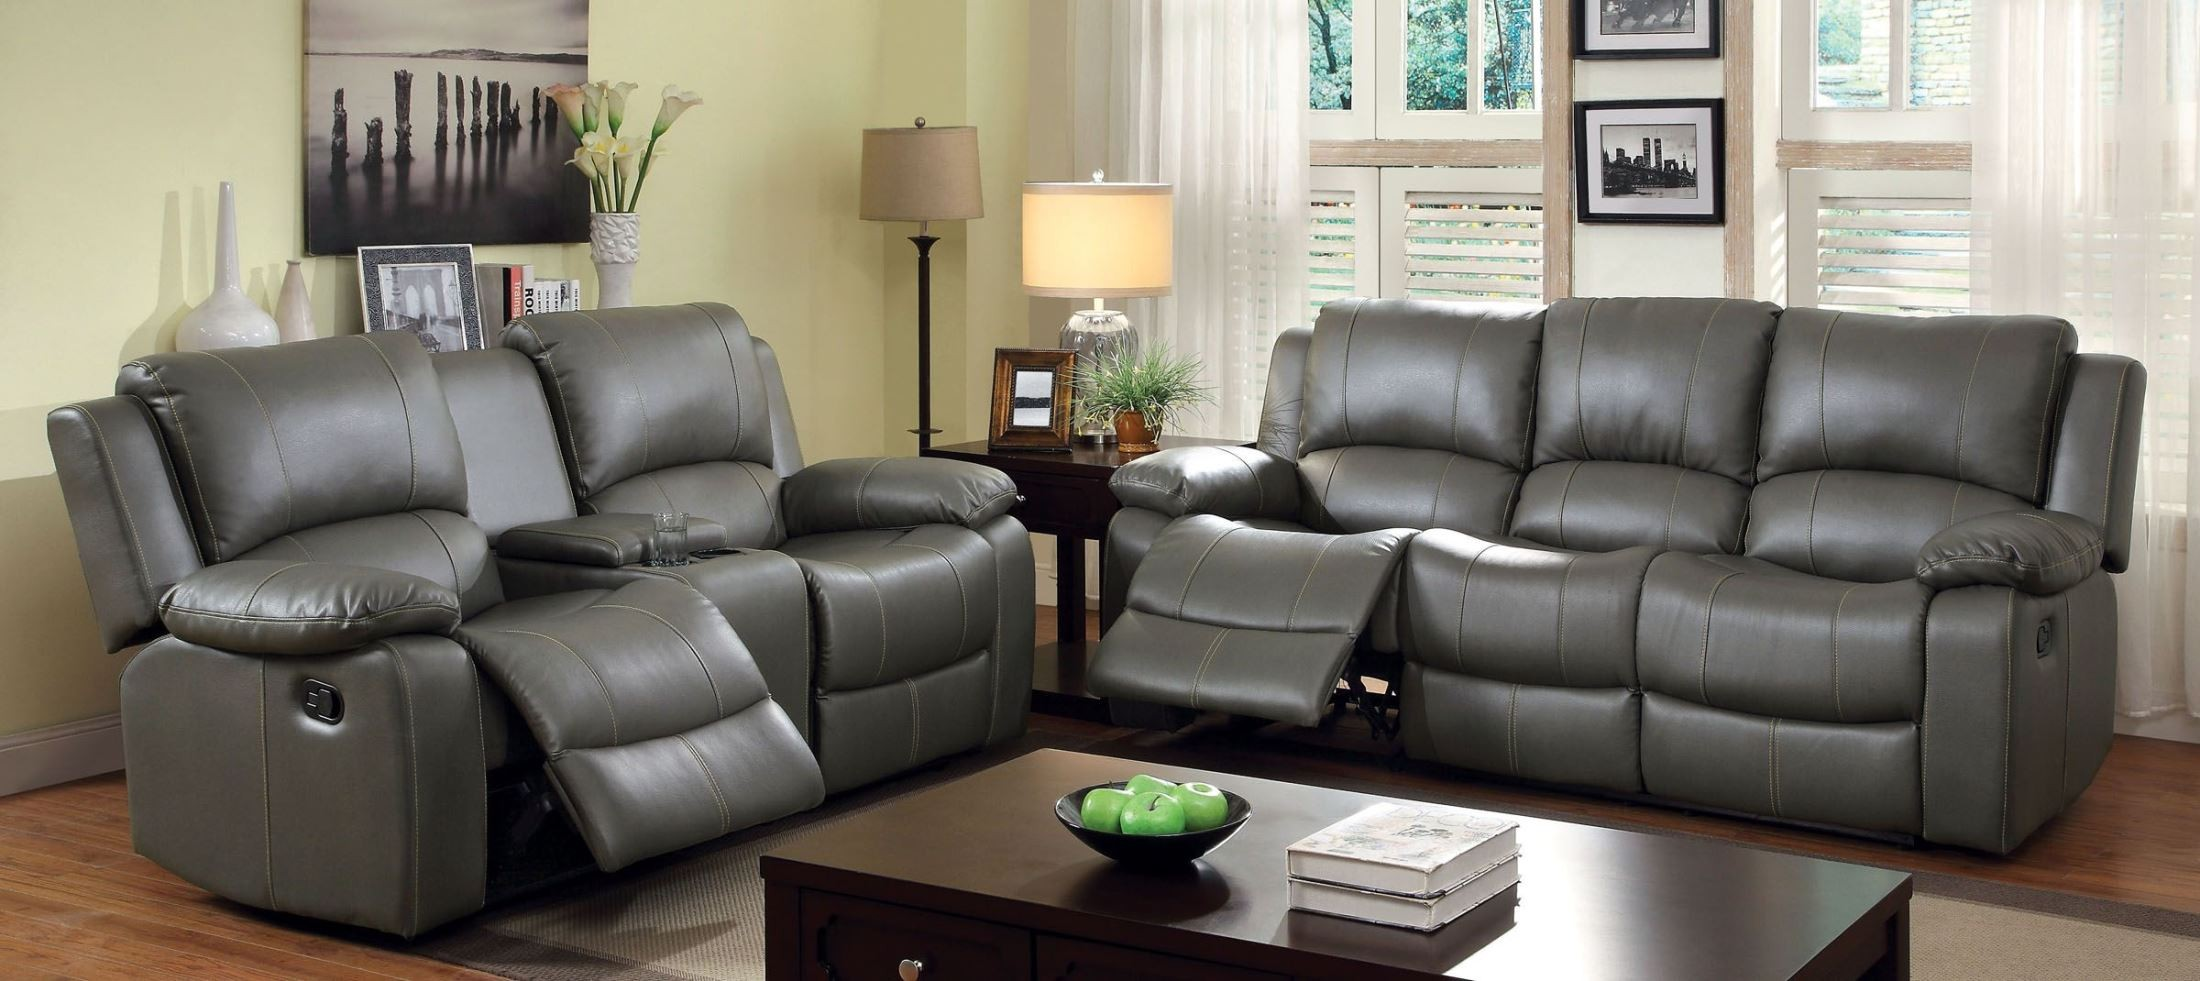 Grey Living Room Chairs Sarles Gray Drop Down Table Reclining Living Room Set From